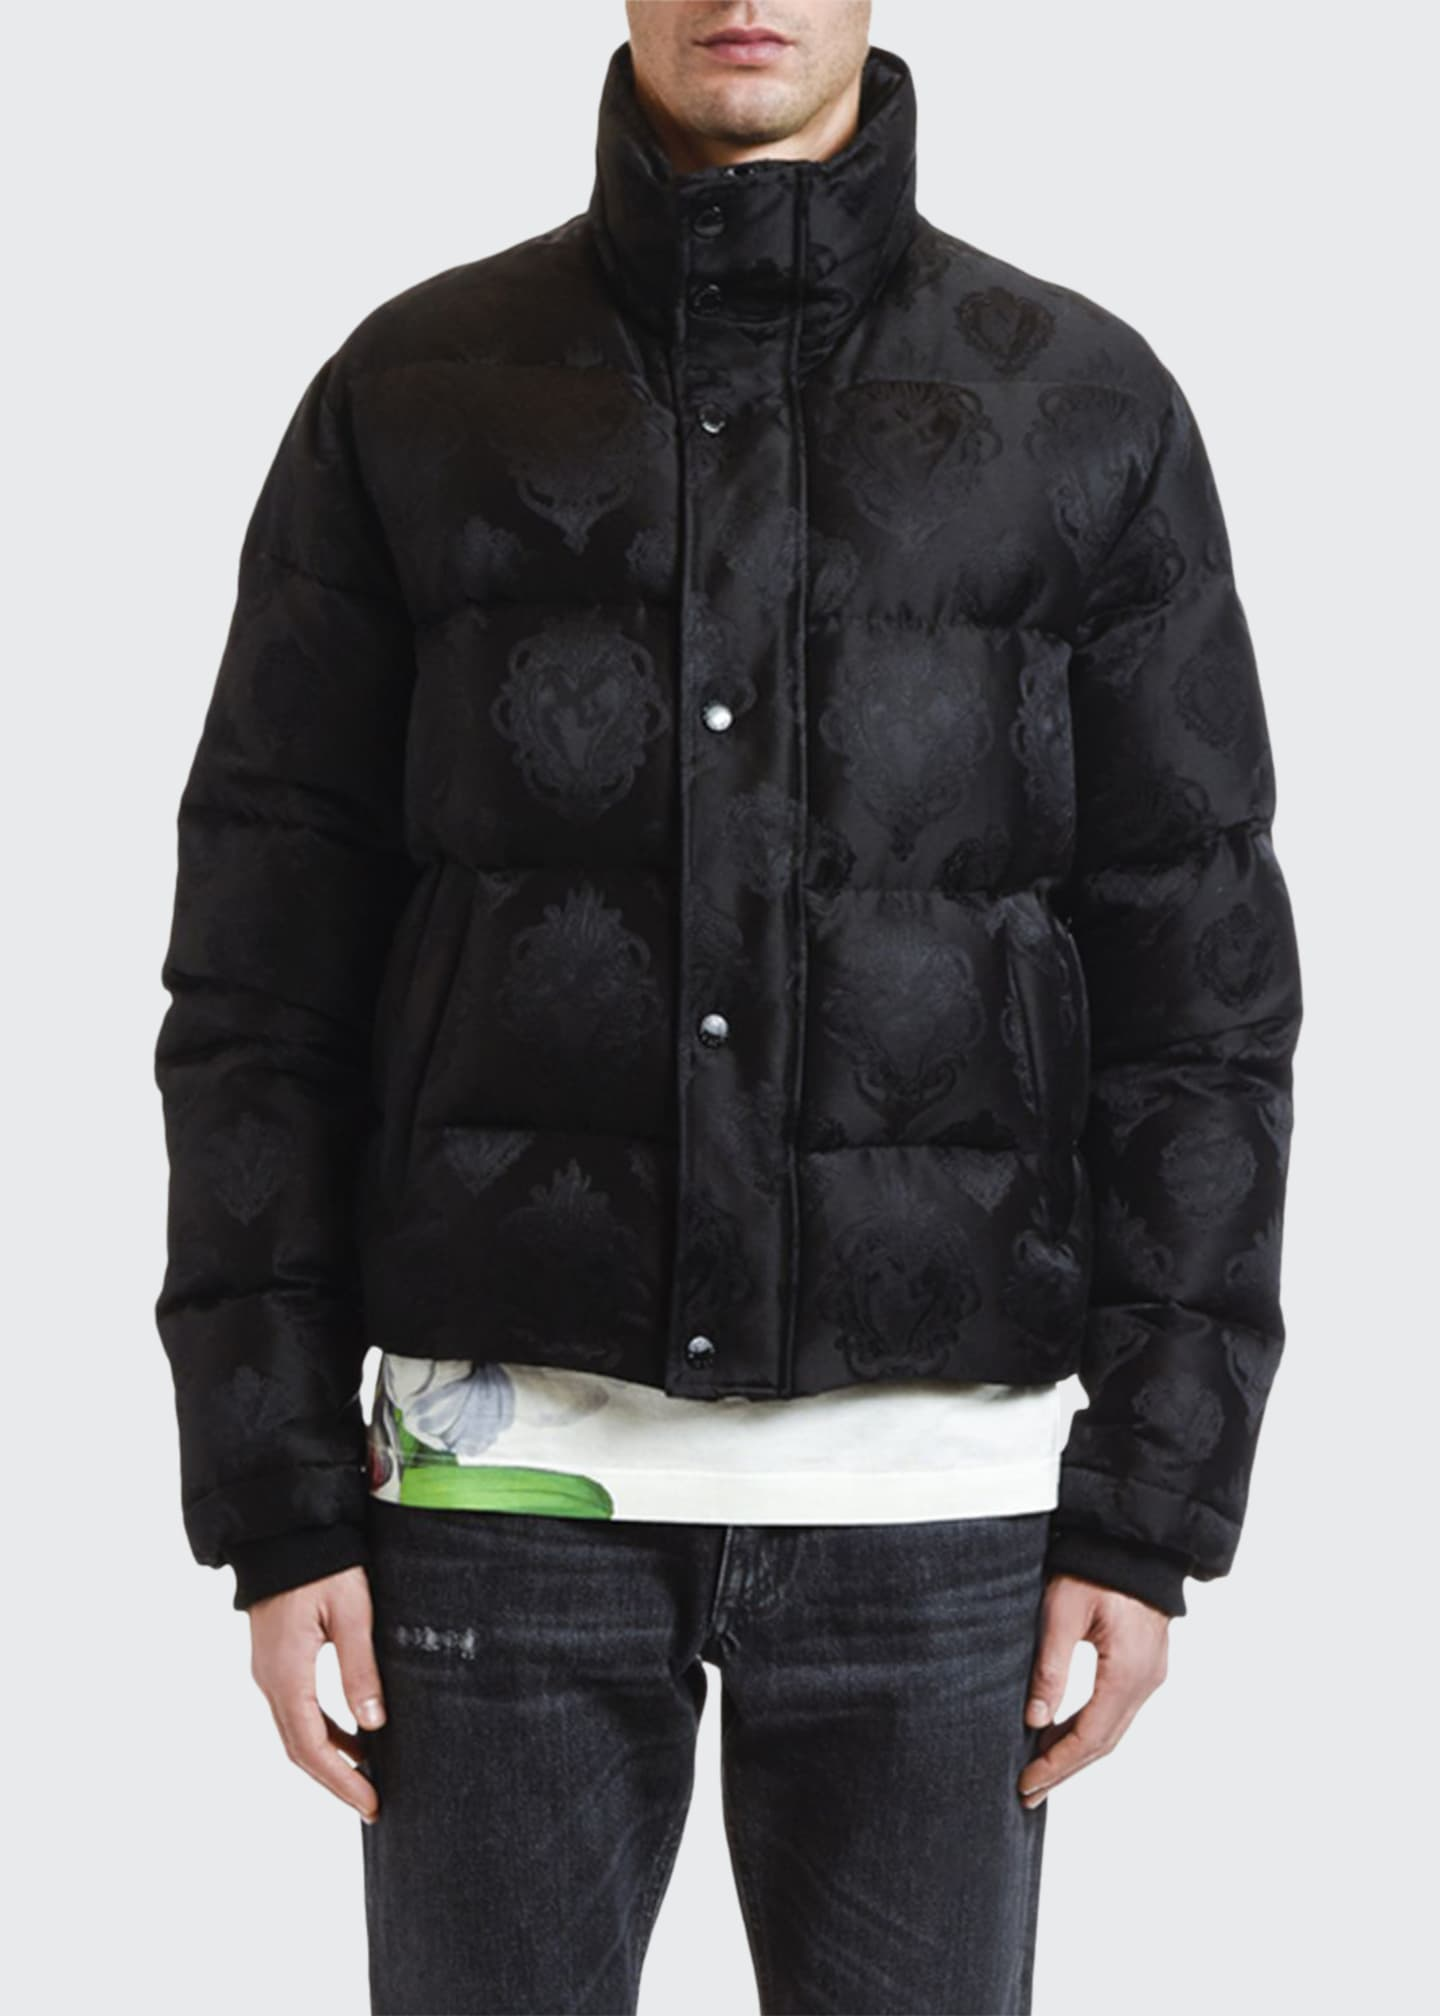 Dolce & Gabbana Men's Jacquard Quilted Puffer Bomber